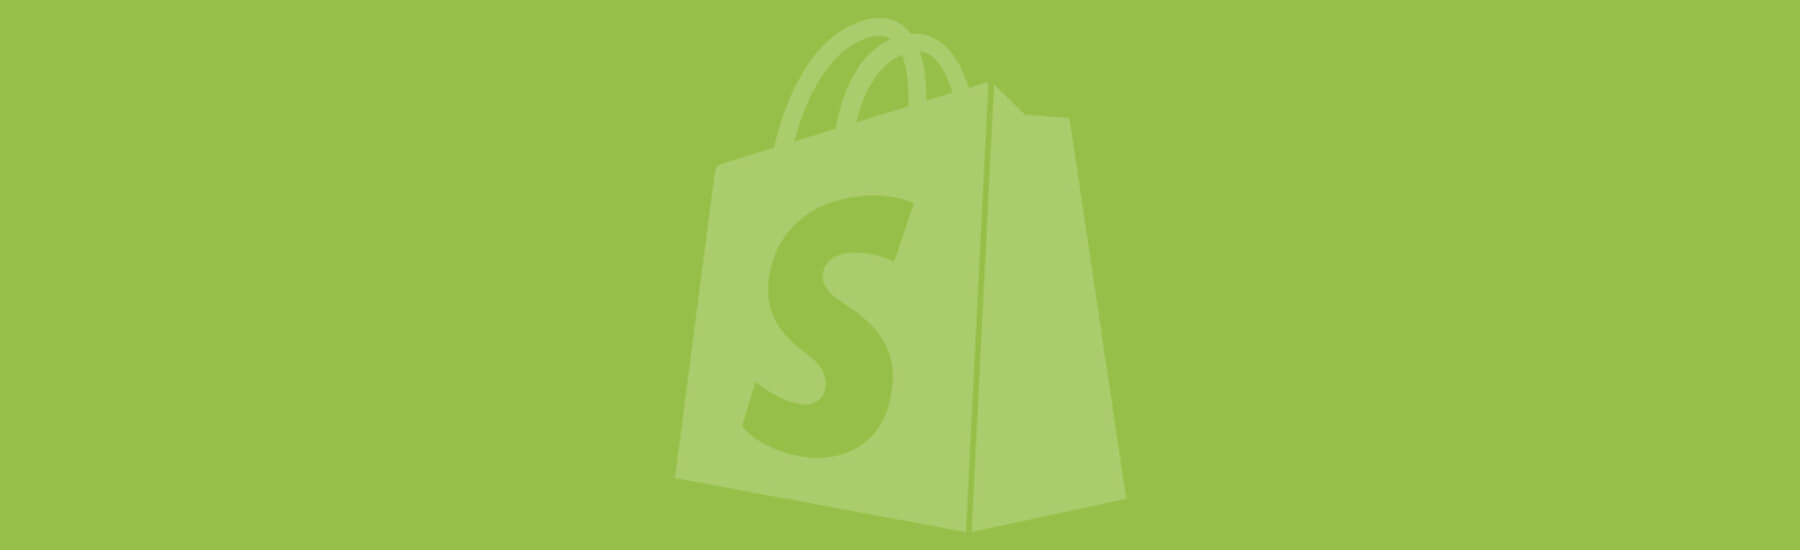 Shopify Platform, as Basis for E-commerce Stores